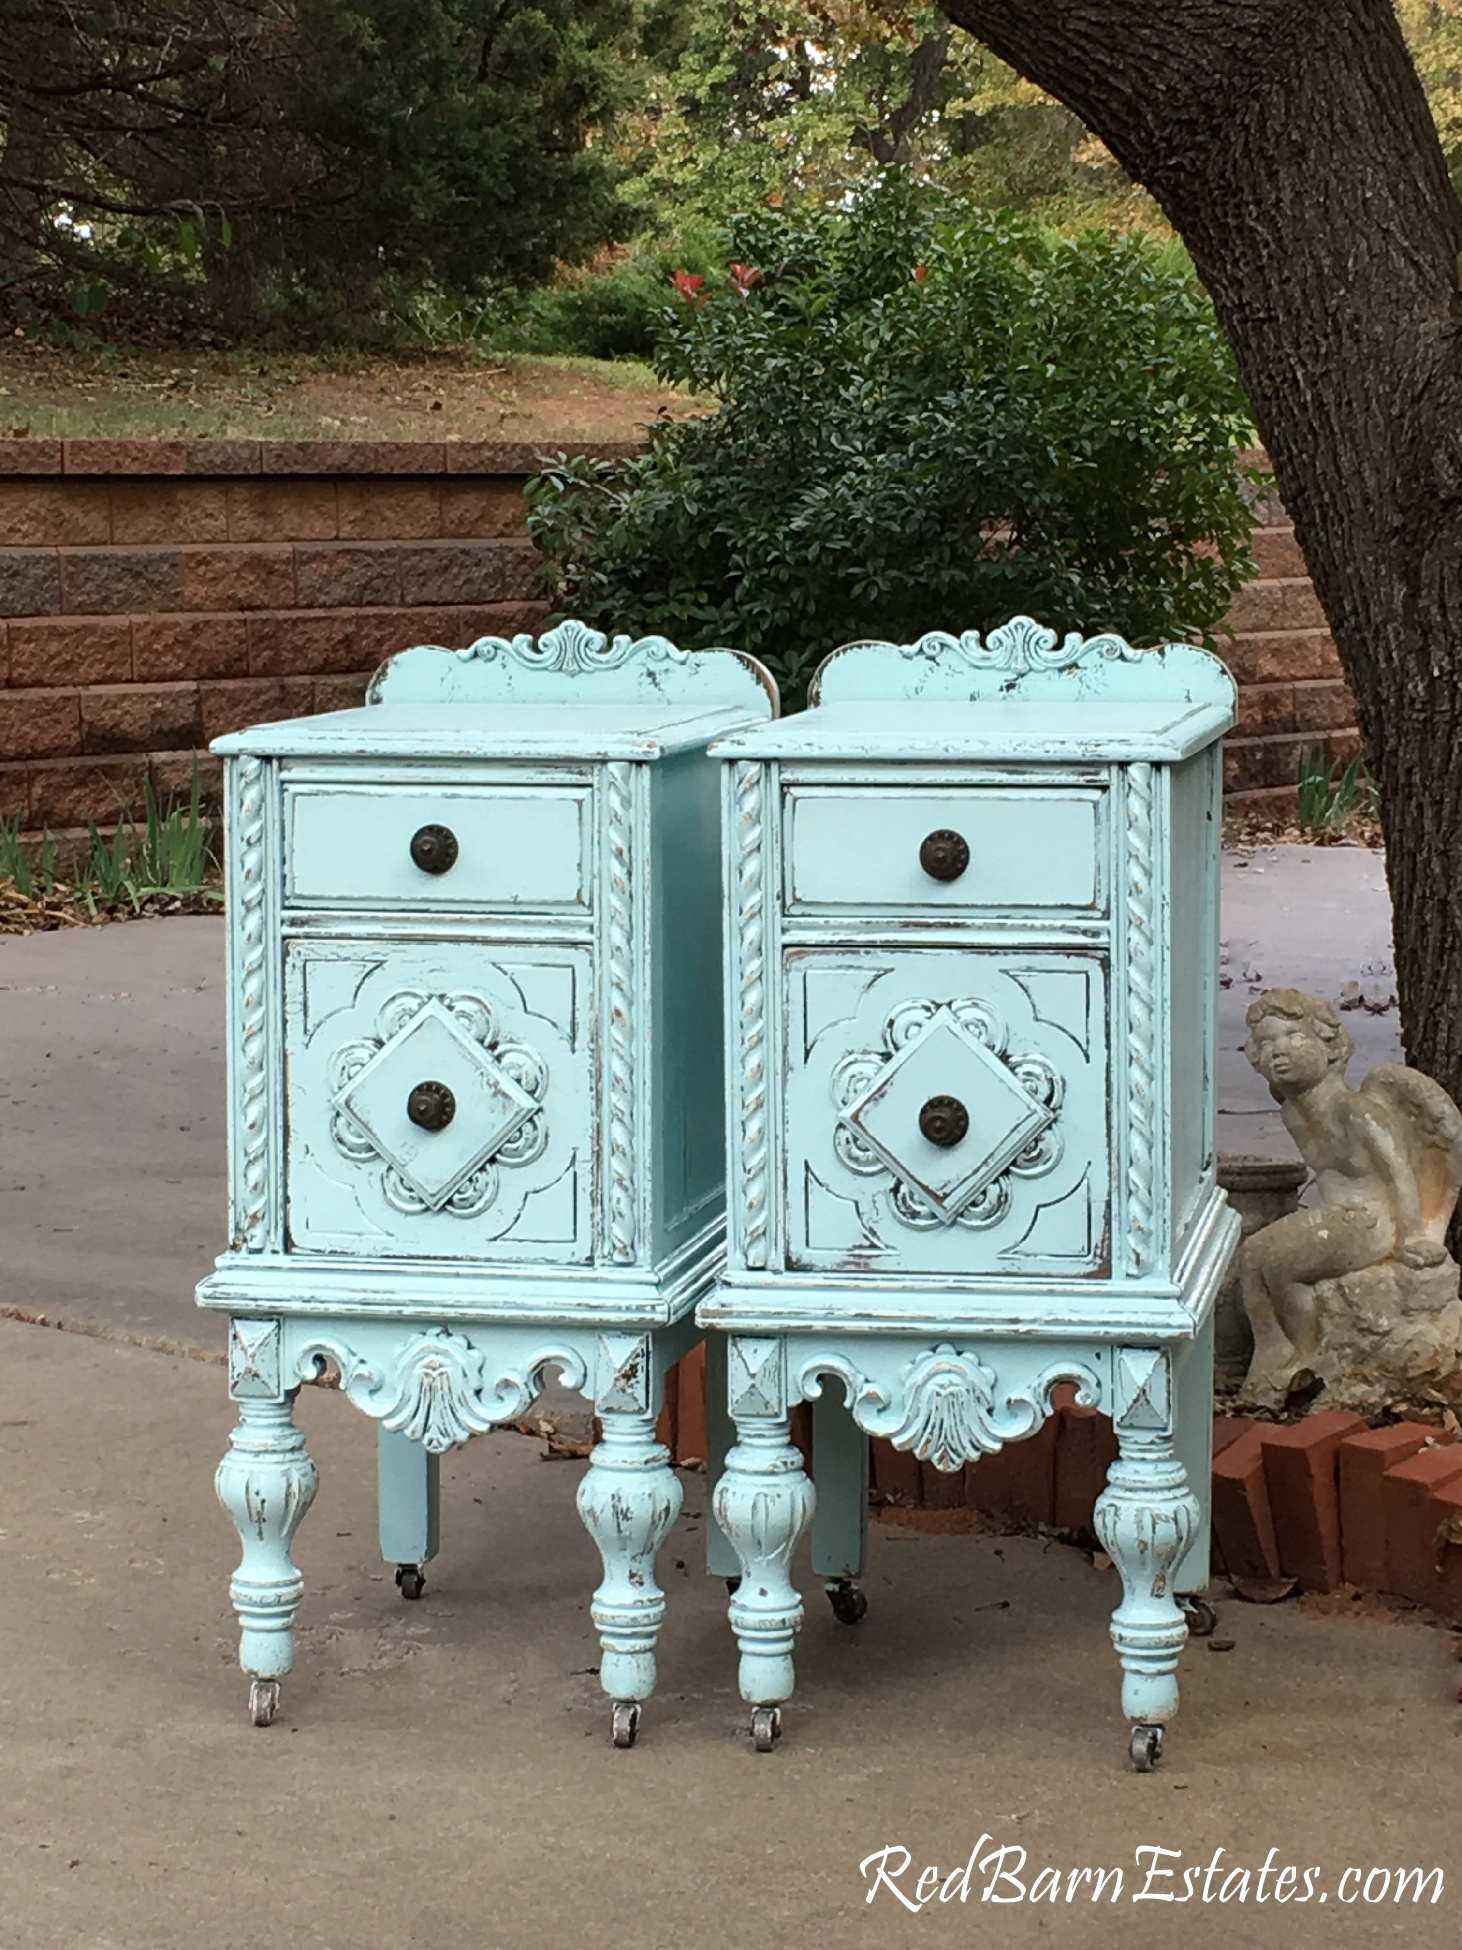 o m g We just finished restoring these incredibly gorgeous